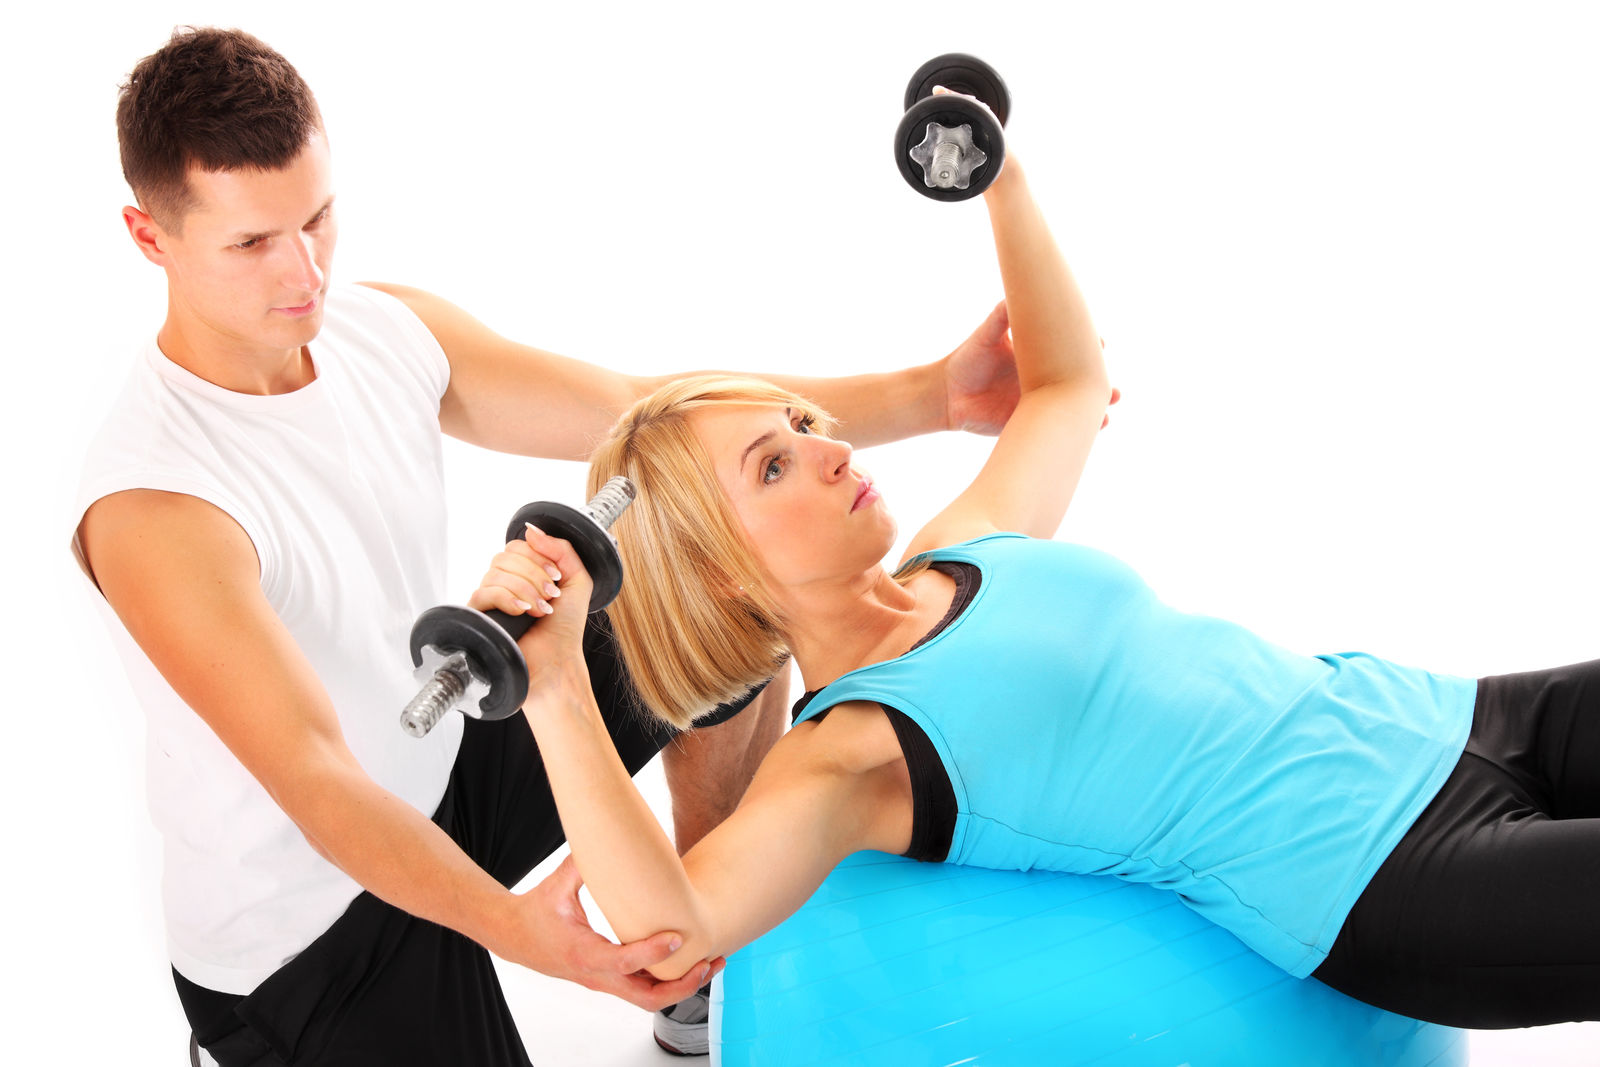 How to Set Up a Personal Training Session